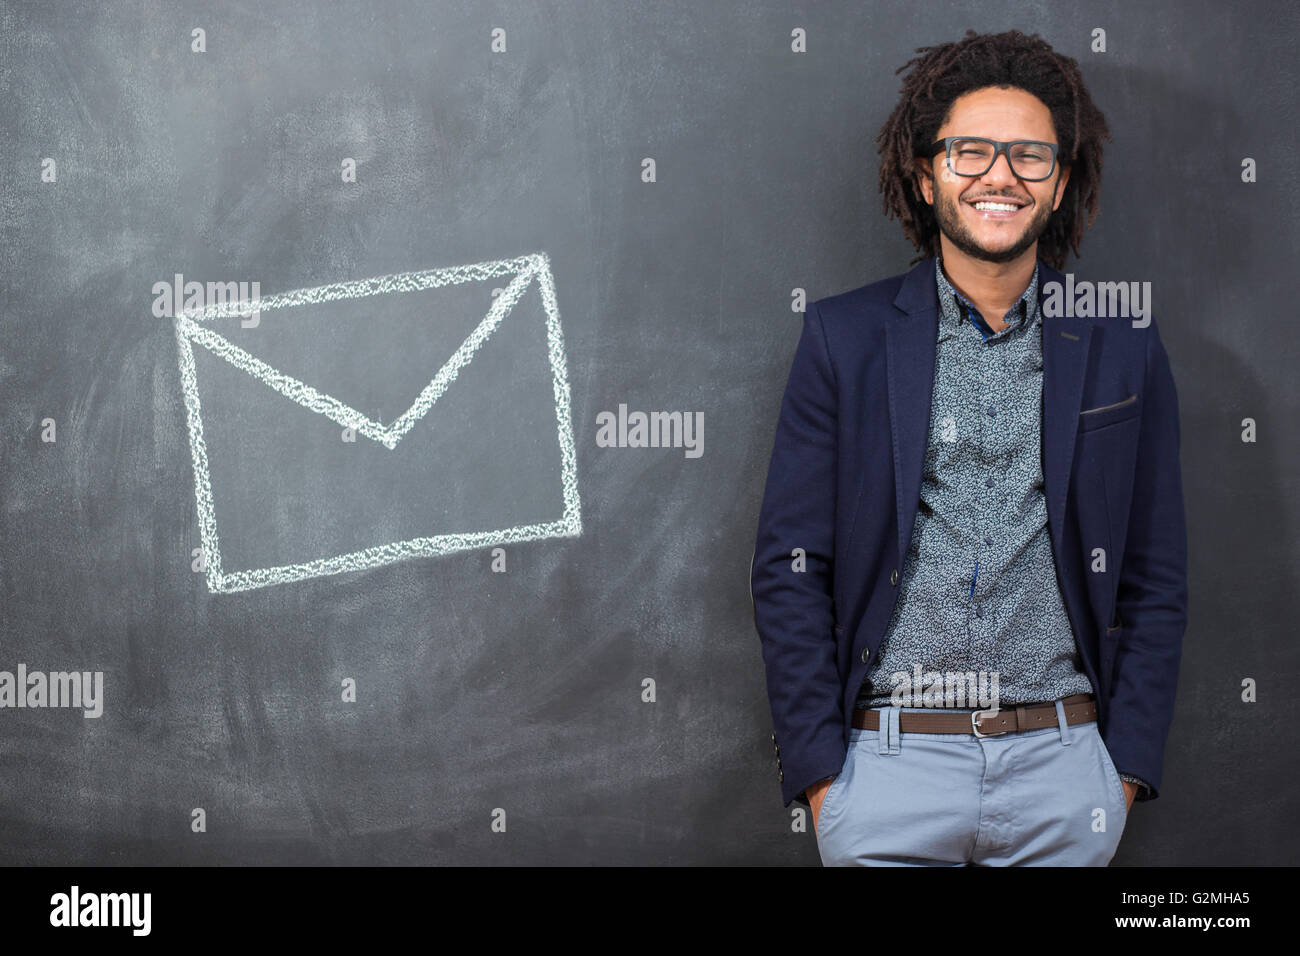 Closeup portrait stunned, surprised businessman in black glasses . electronic device and internet concept. - Stock Image